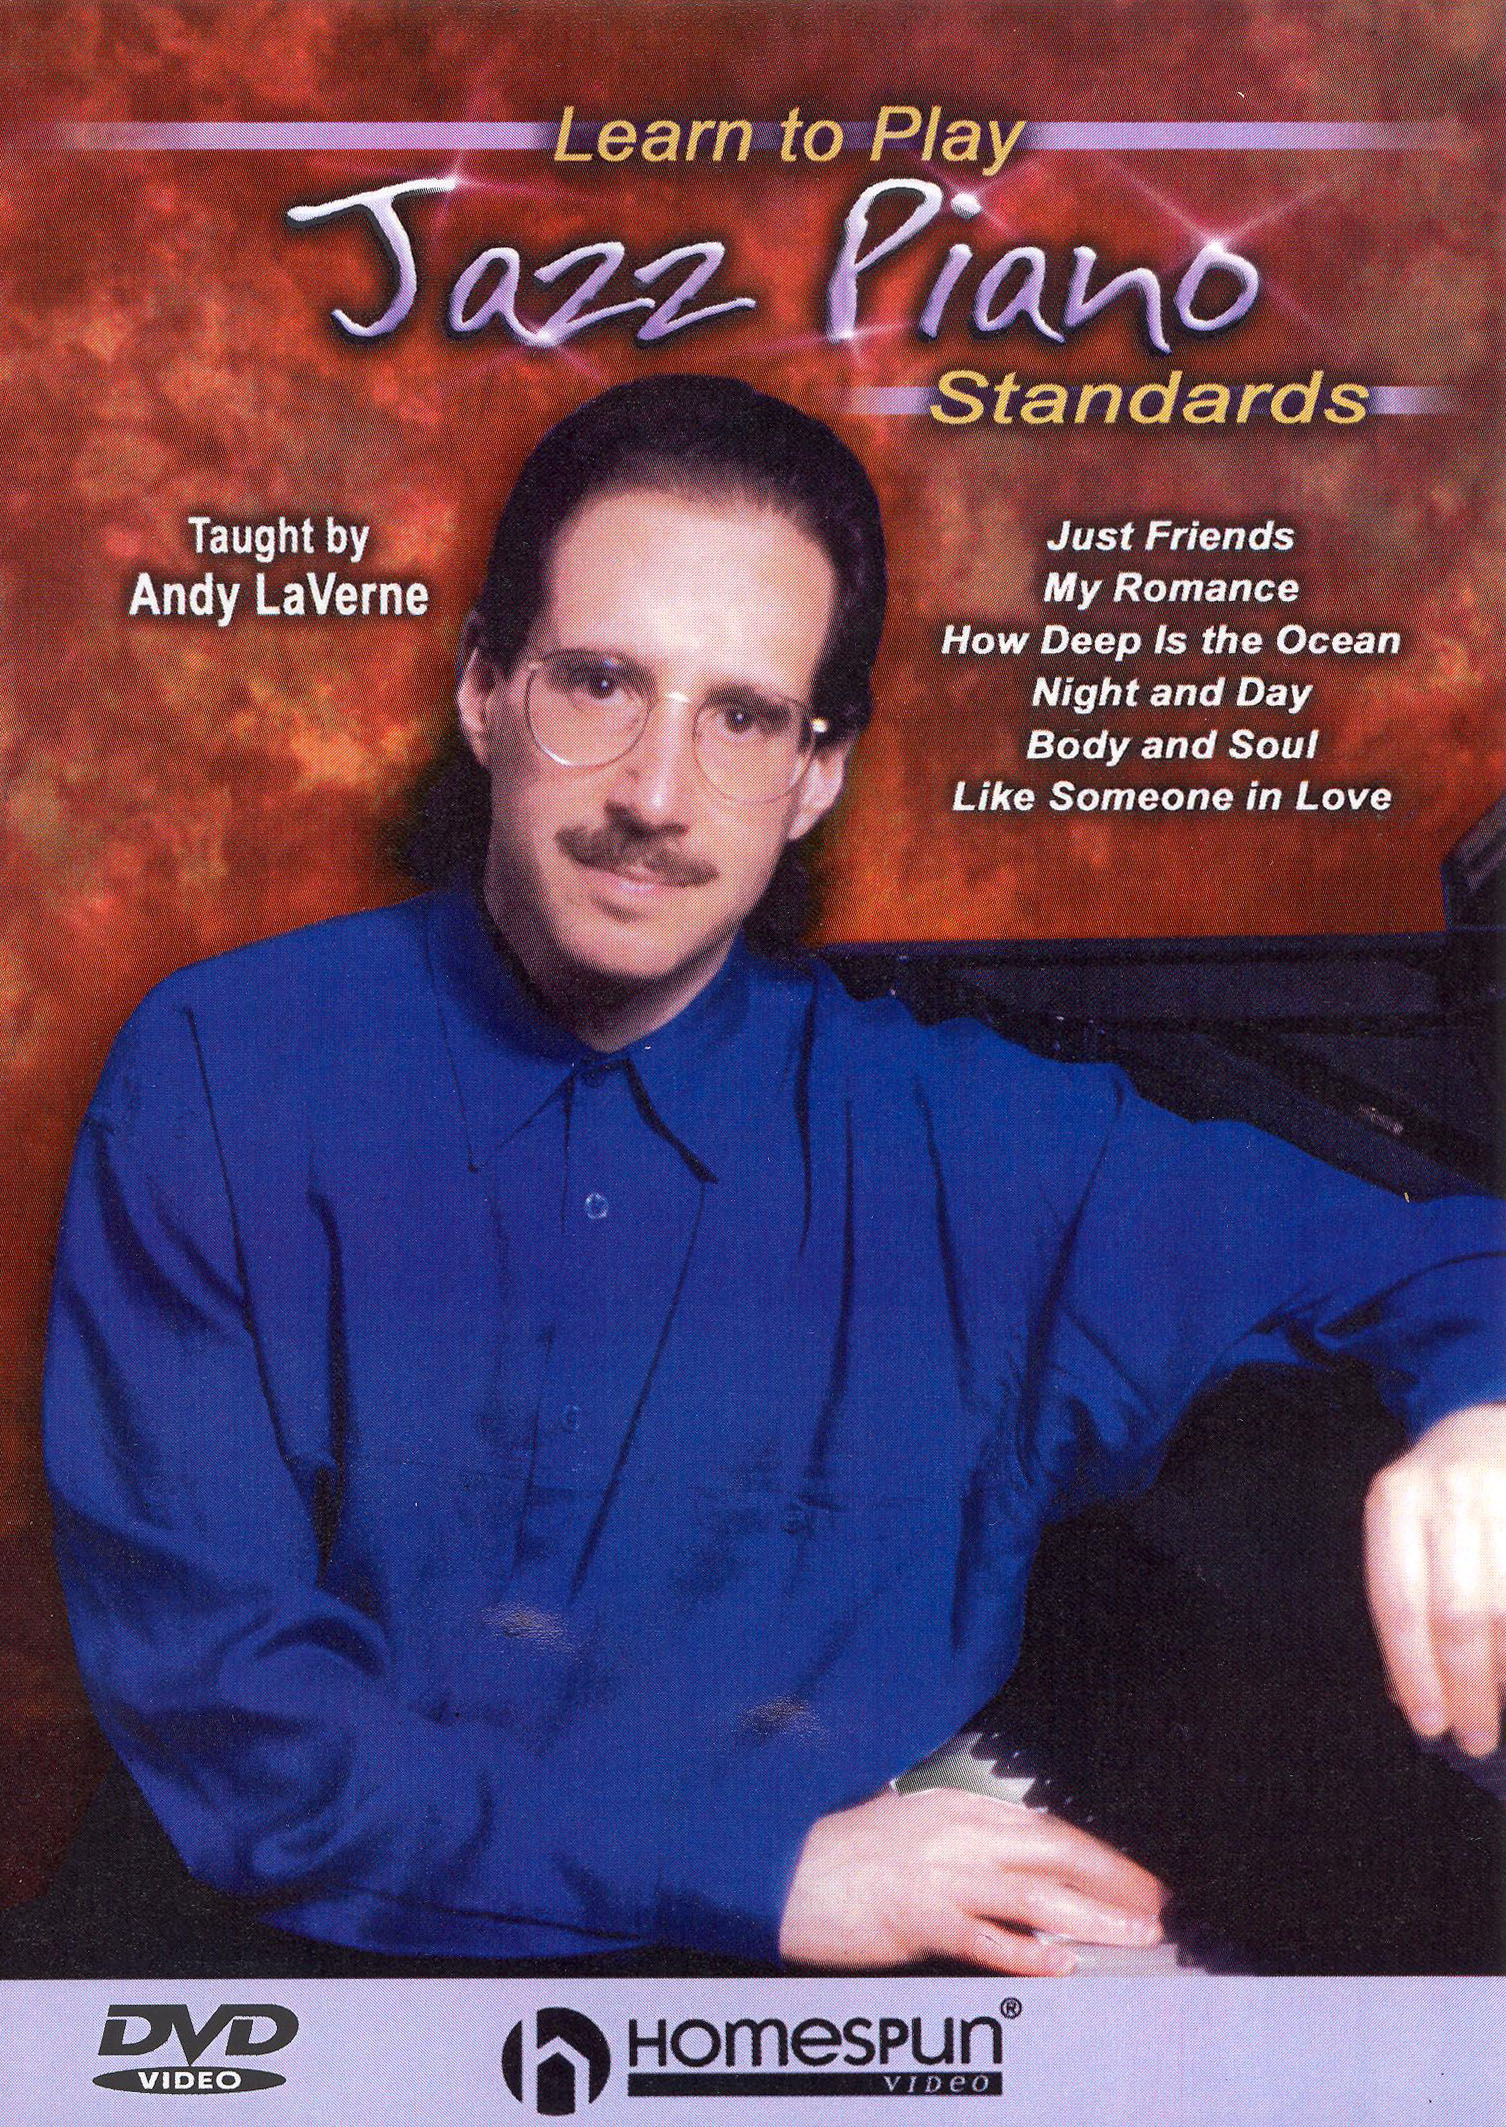 Andy LaVerne: Learn to Play Jazz Piano Standards